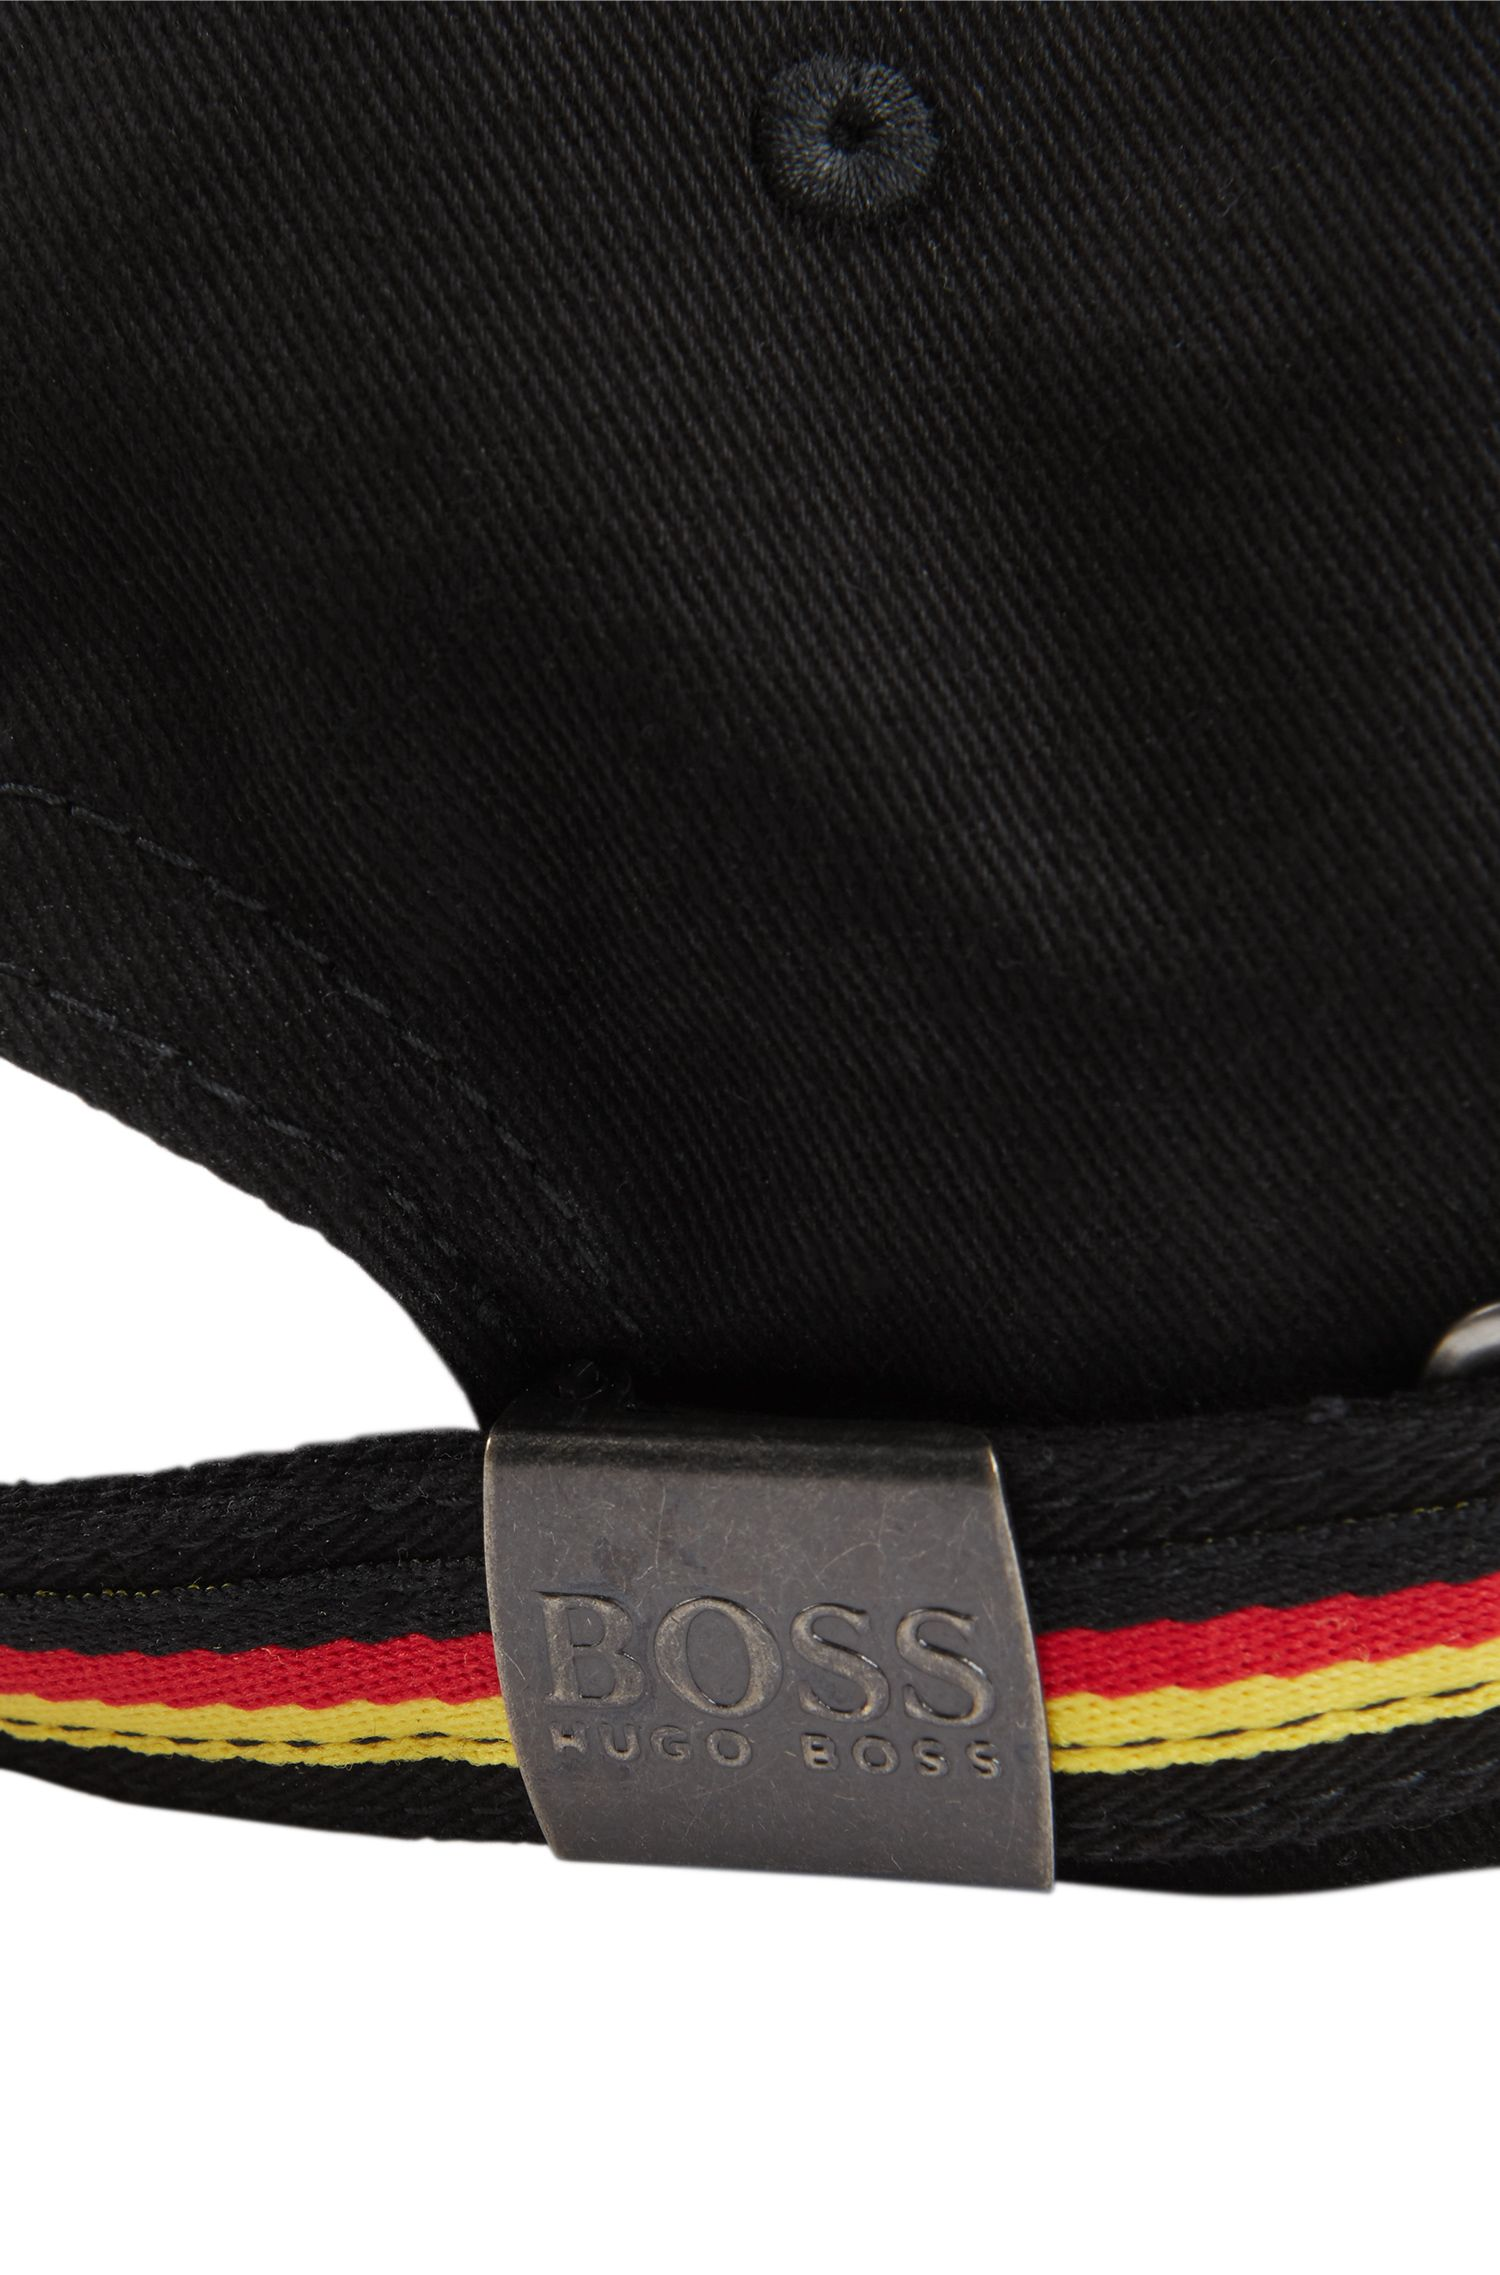 Kids' cap in cotton twill with Germany's team colours